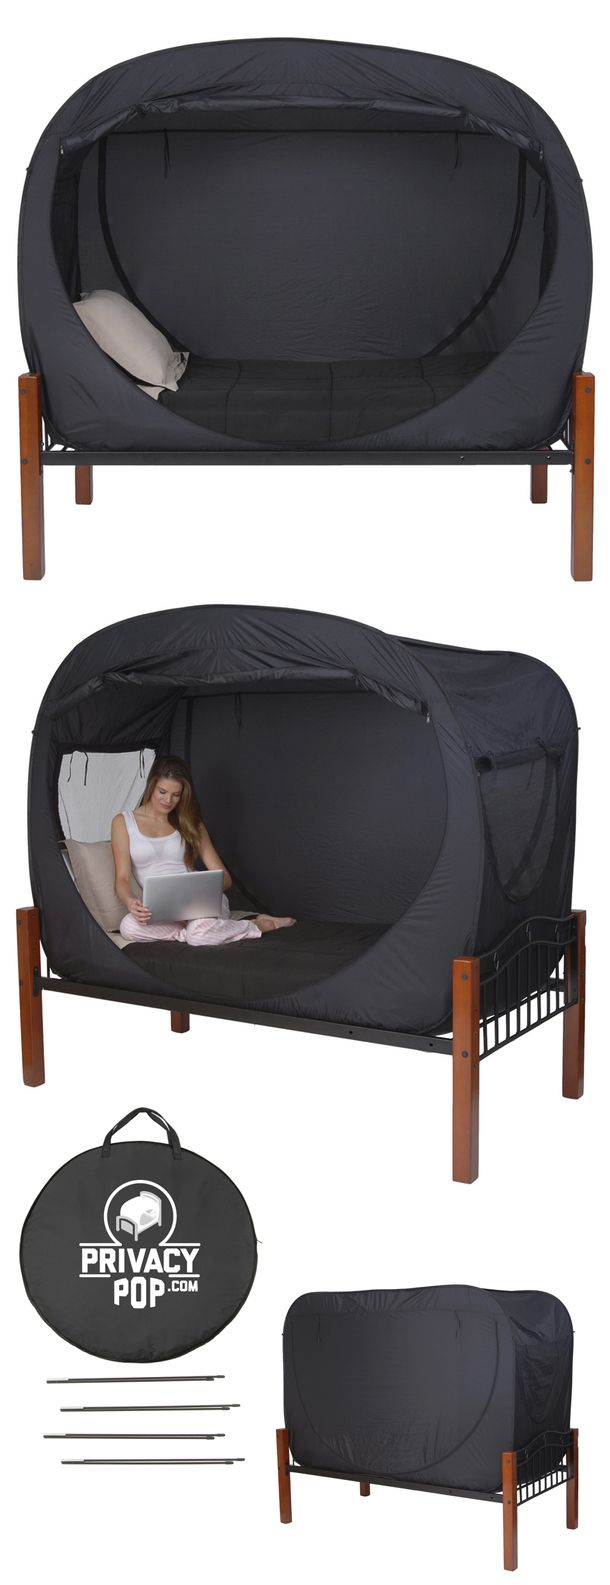 Privacy Pop Tent Twin Black // this is an absolutely ingenious design for the privacy of dorm-dwellers and room-sharers